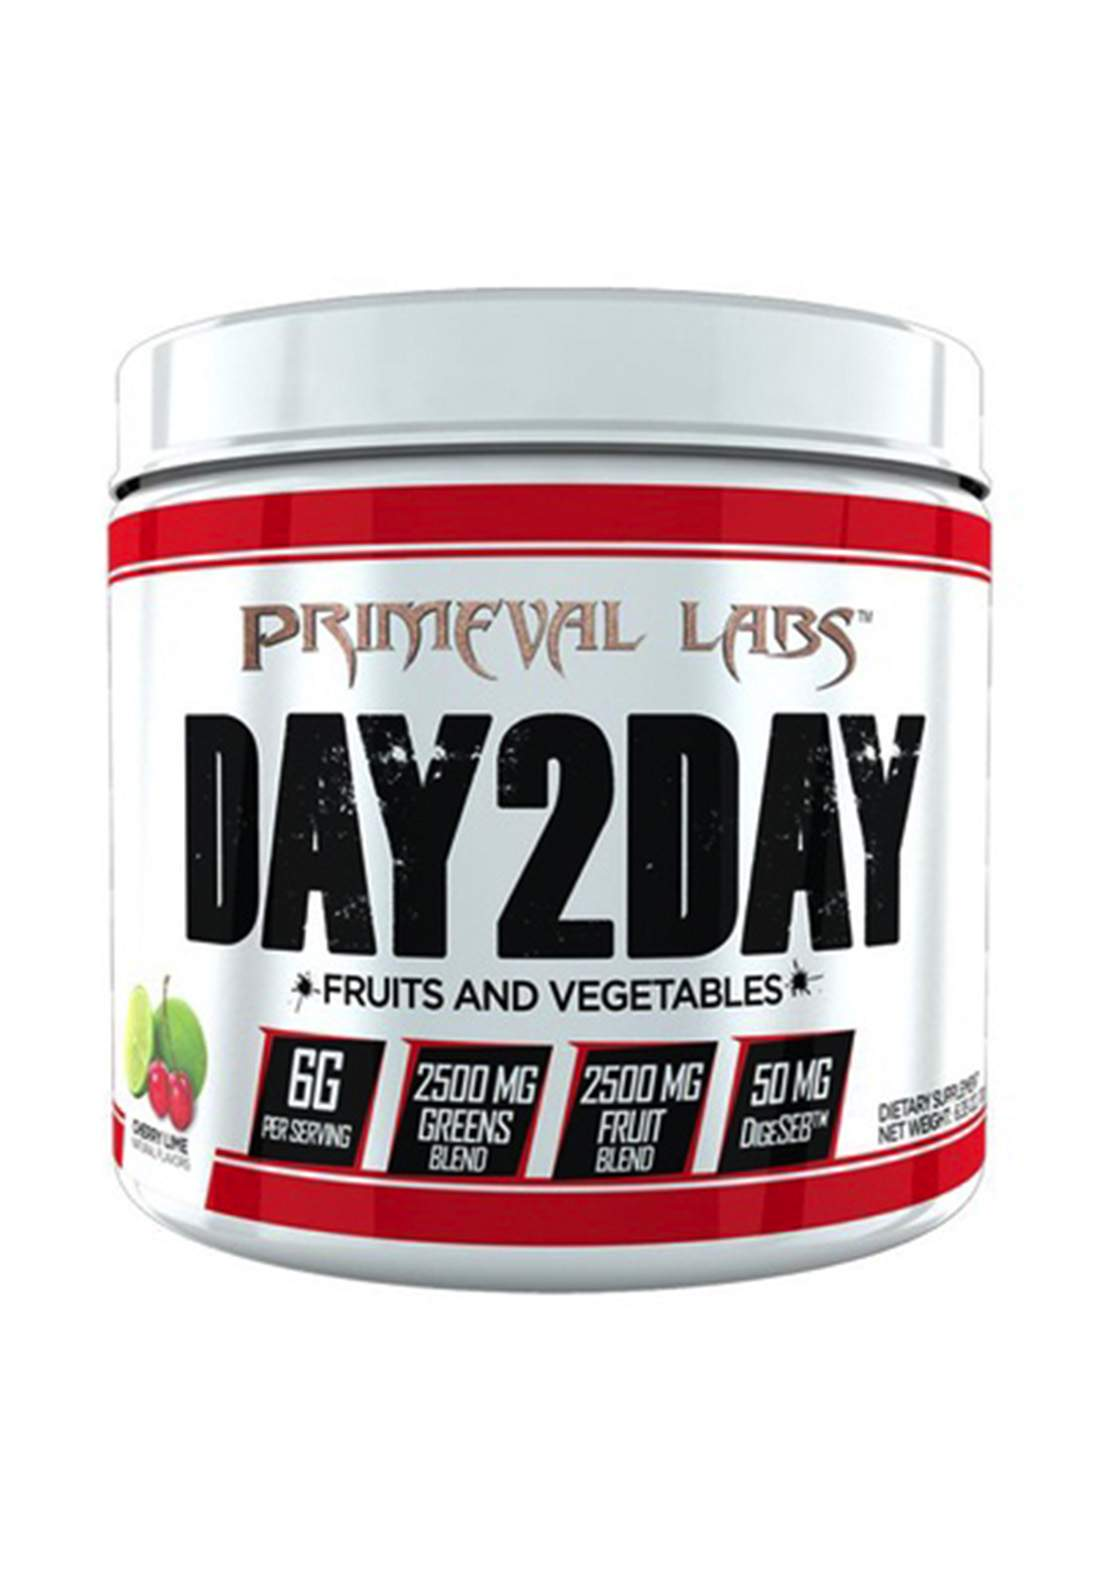 Primeval Labs Day2day Fruits & Vegetables Cherry Lime - 60 Servings مكمل غذائي